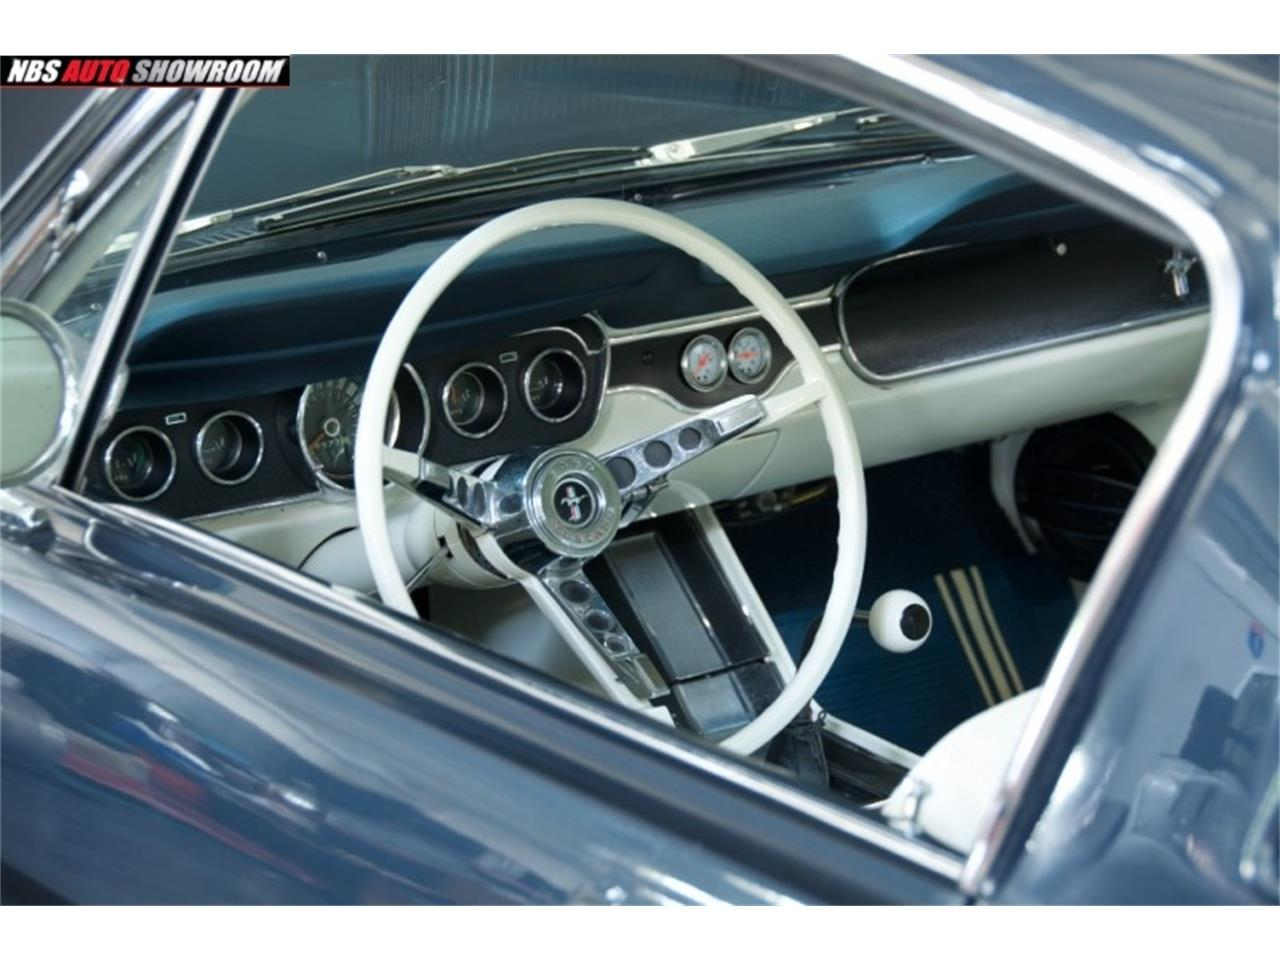 Large Picture of Classic 1965 Mustang located in Milpitas California - $37,074.00 Offered by NBS Auto Showroom - PHR5